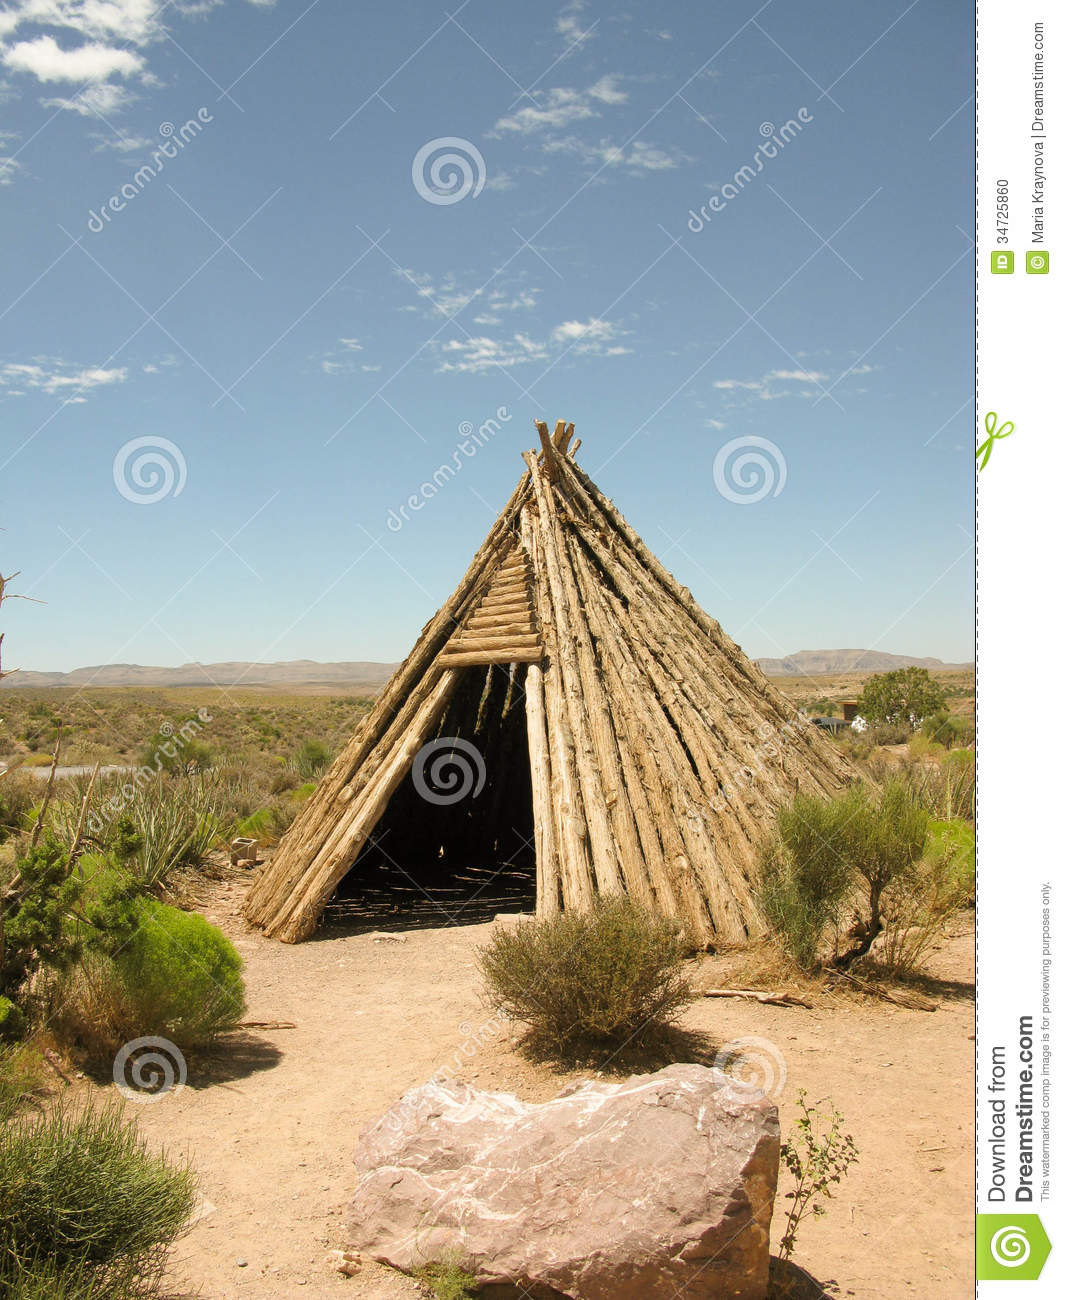 Dwelling Of The Native American Indian Stock Photo